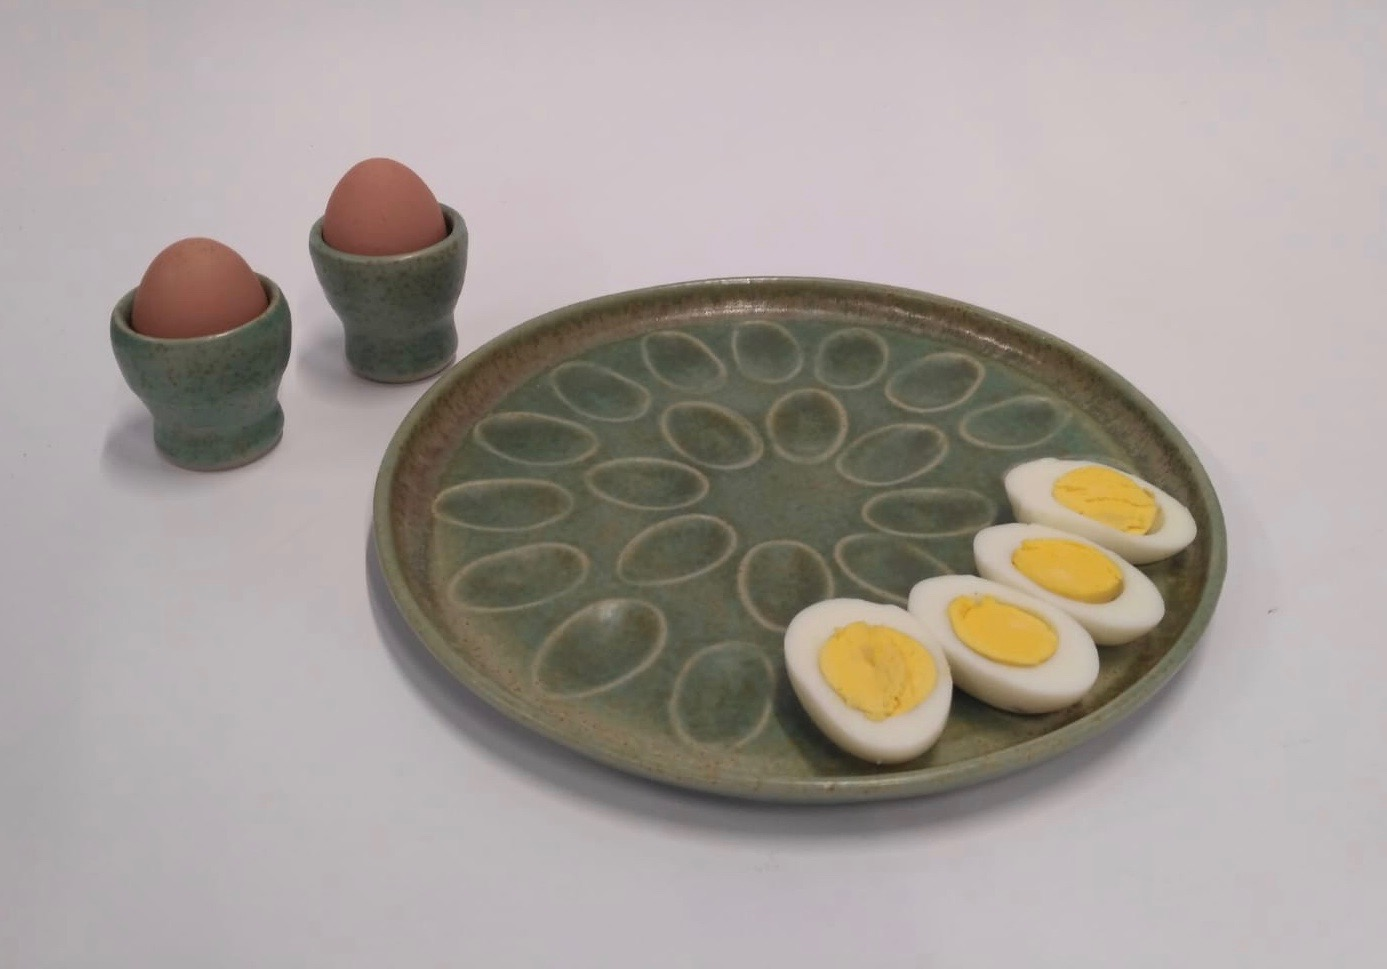 Plate for stuffed eggs